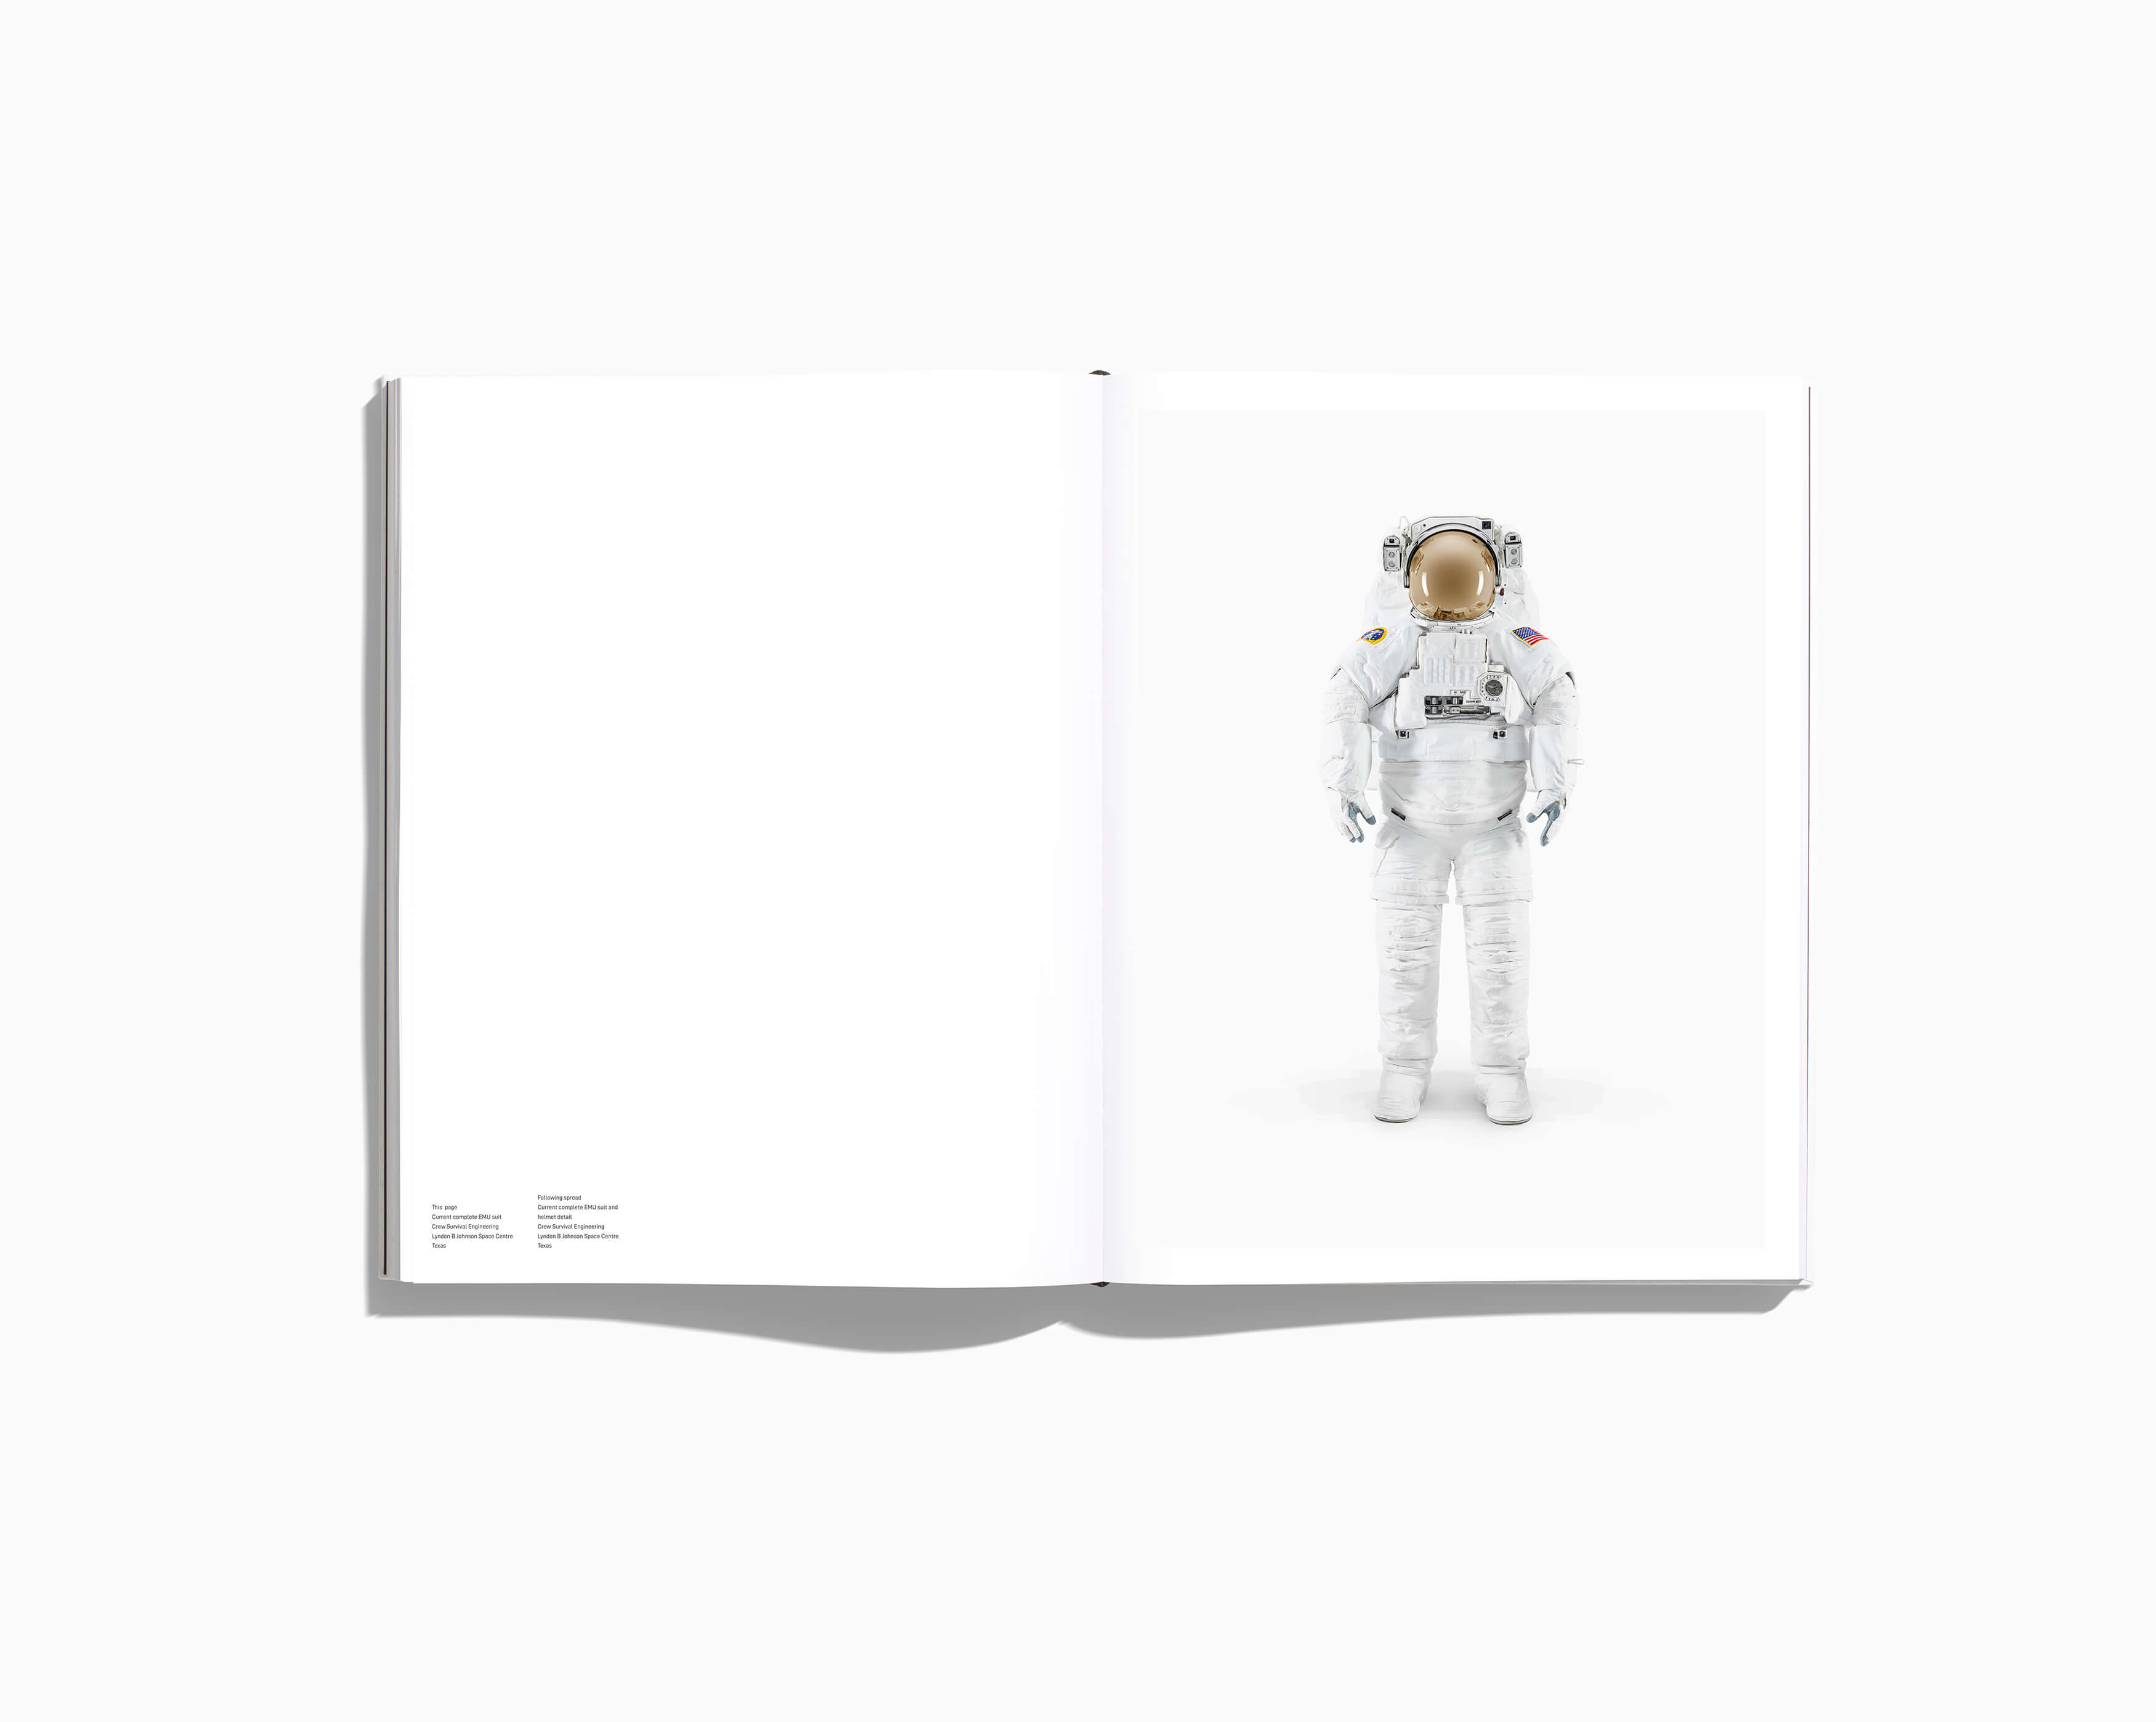 NASA PAST AND PRESET DREAMS OF THE FUTURE - EXTRAVEHICULAR MOBILITY UNIT (EMU) BOOK SPREAD 3500 X 100 copy